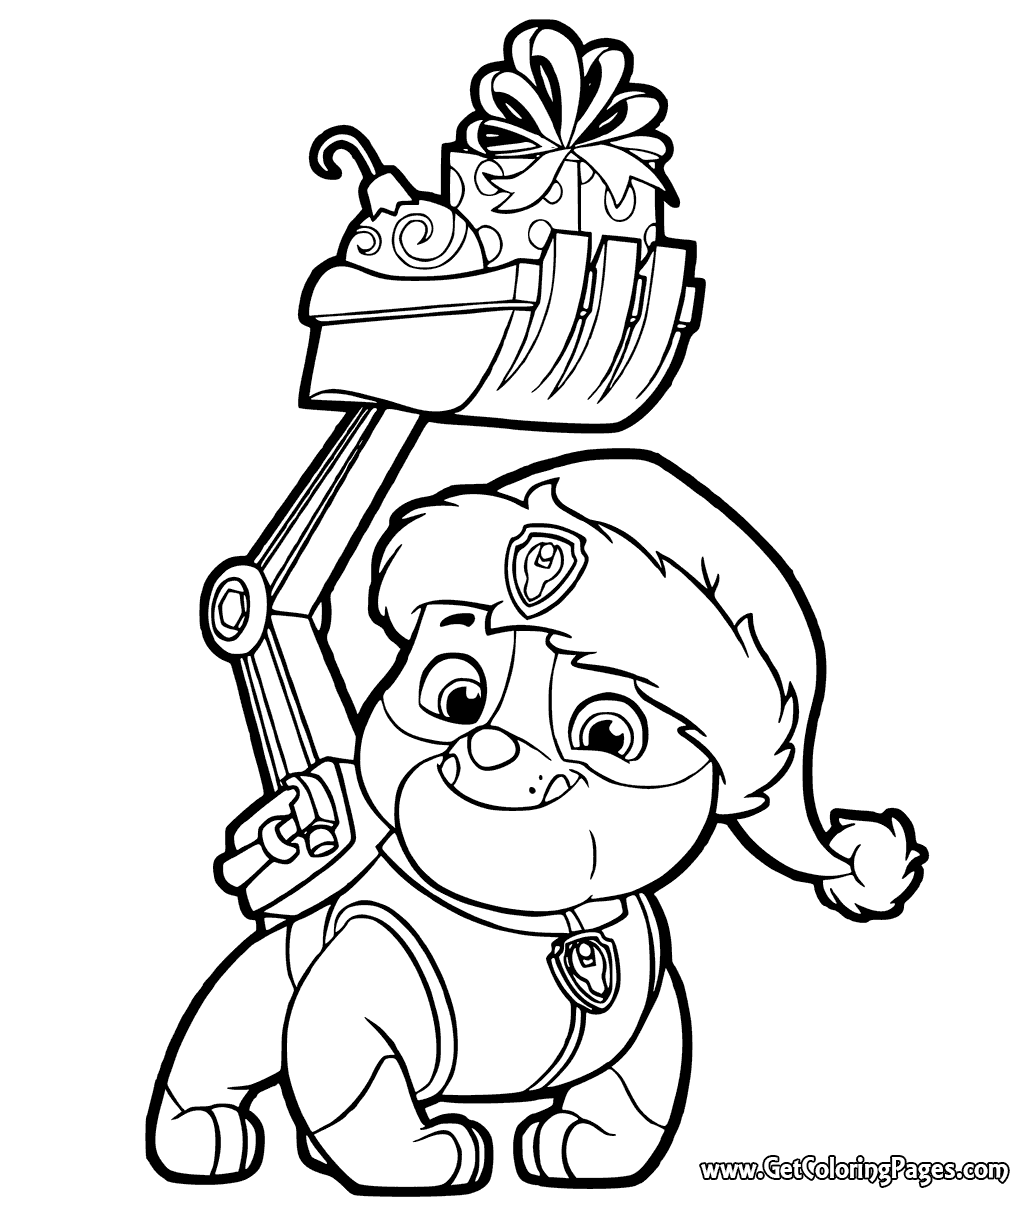 Christmas Paw Patrol Coloring Pages At Getdrawings Com Free For